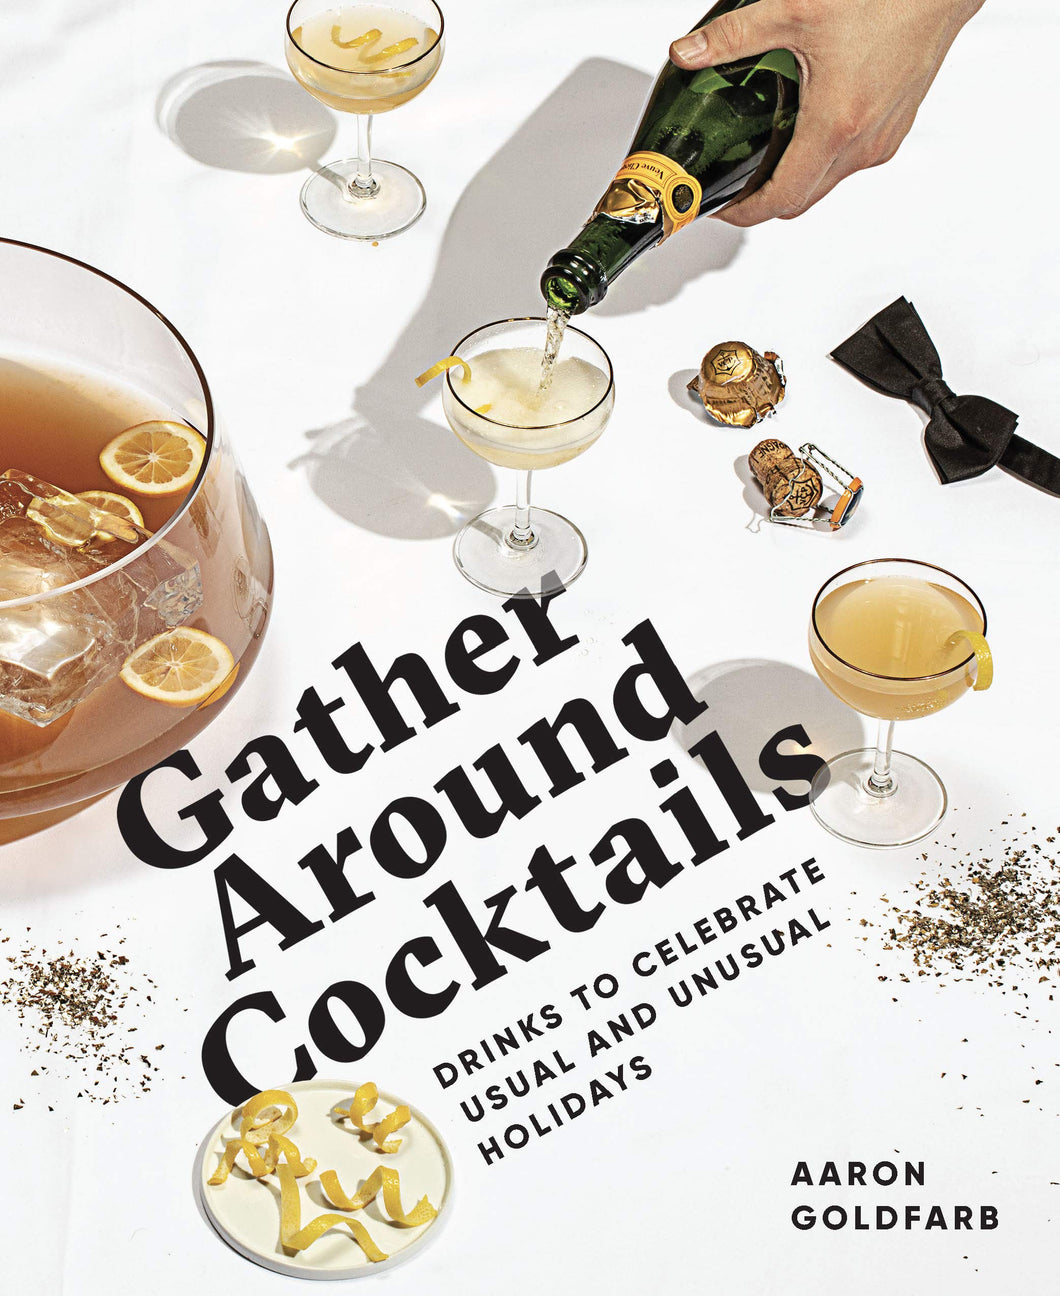 Gather Around Cocktails